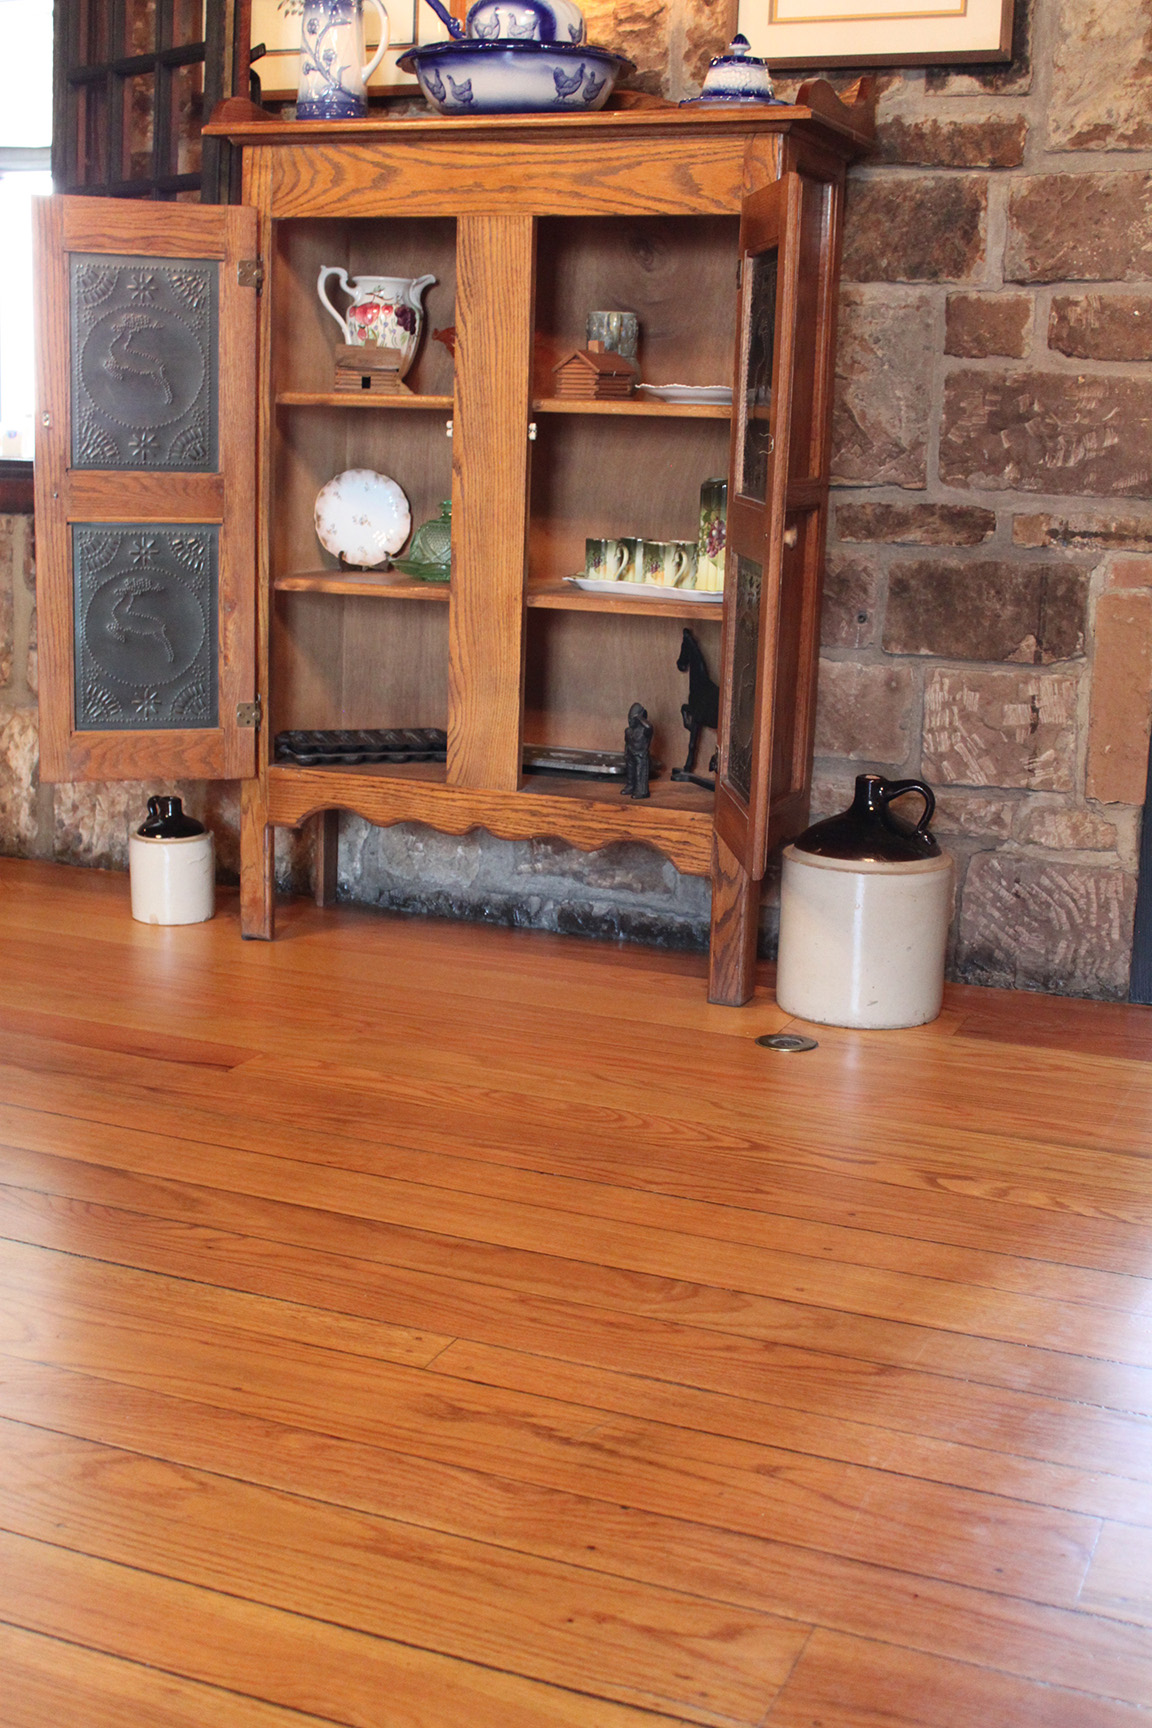 new nyc york wood sanding floor floors refinishing refinish